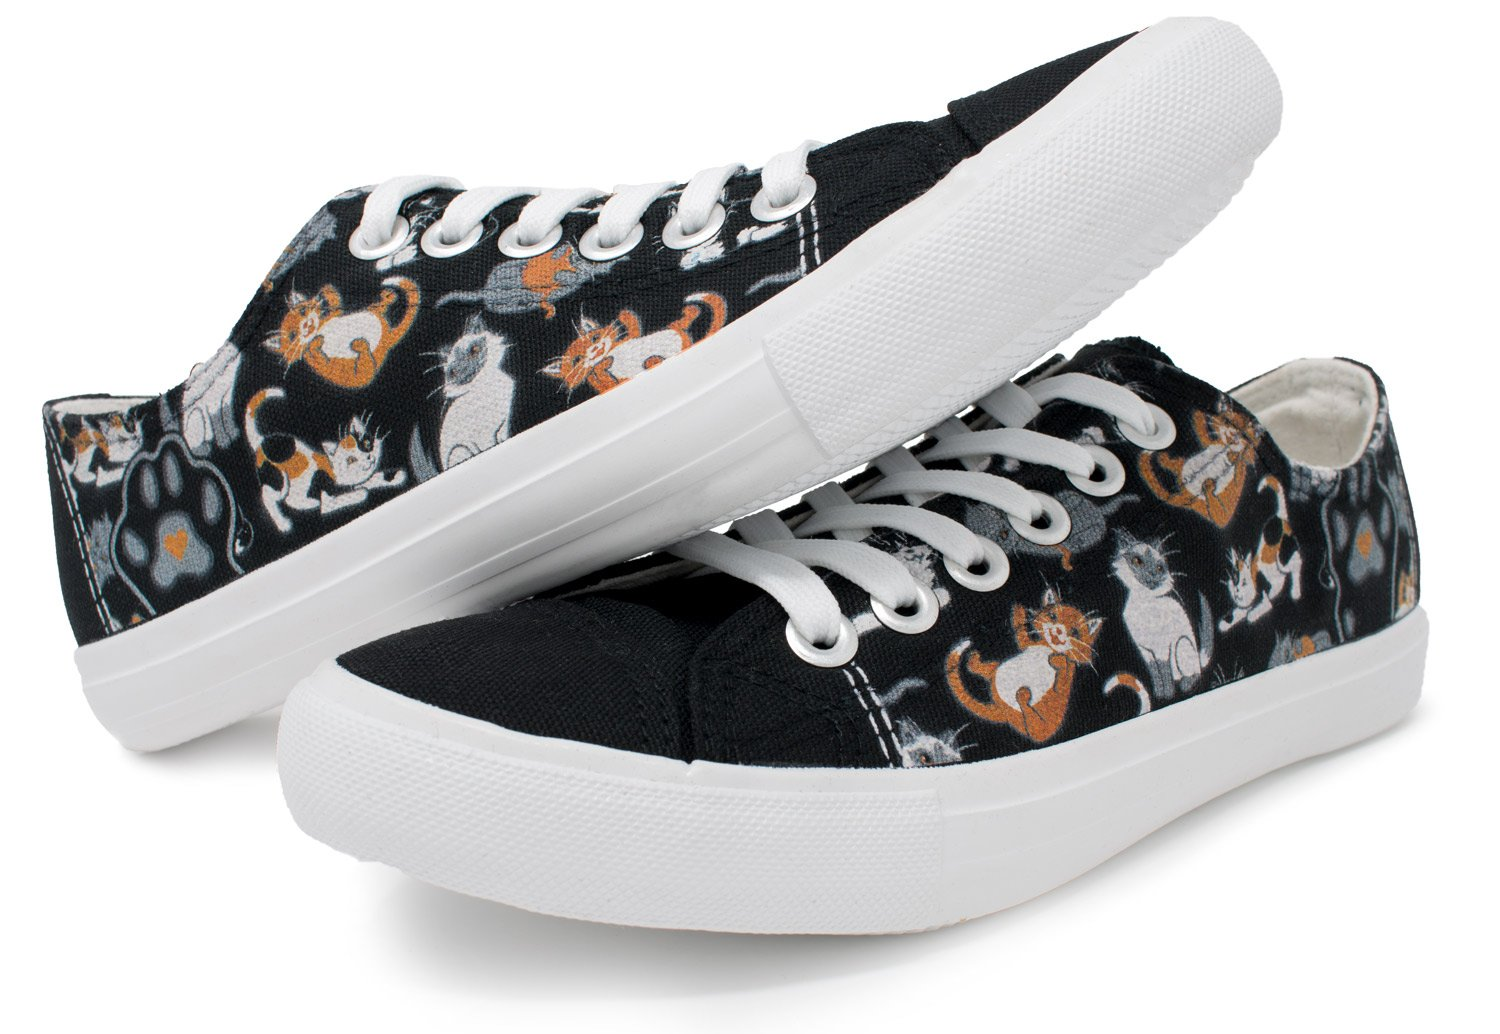 the latest c47d8 ecbbe Kitten Sneakers   Mom Dad Lady Gym Zapato de tenis - Unisex Mujeres Hombres  Negro